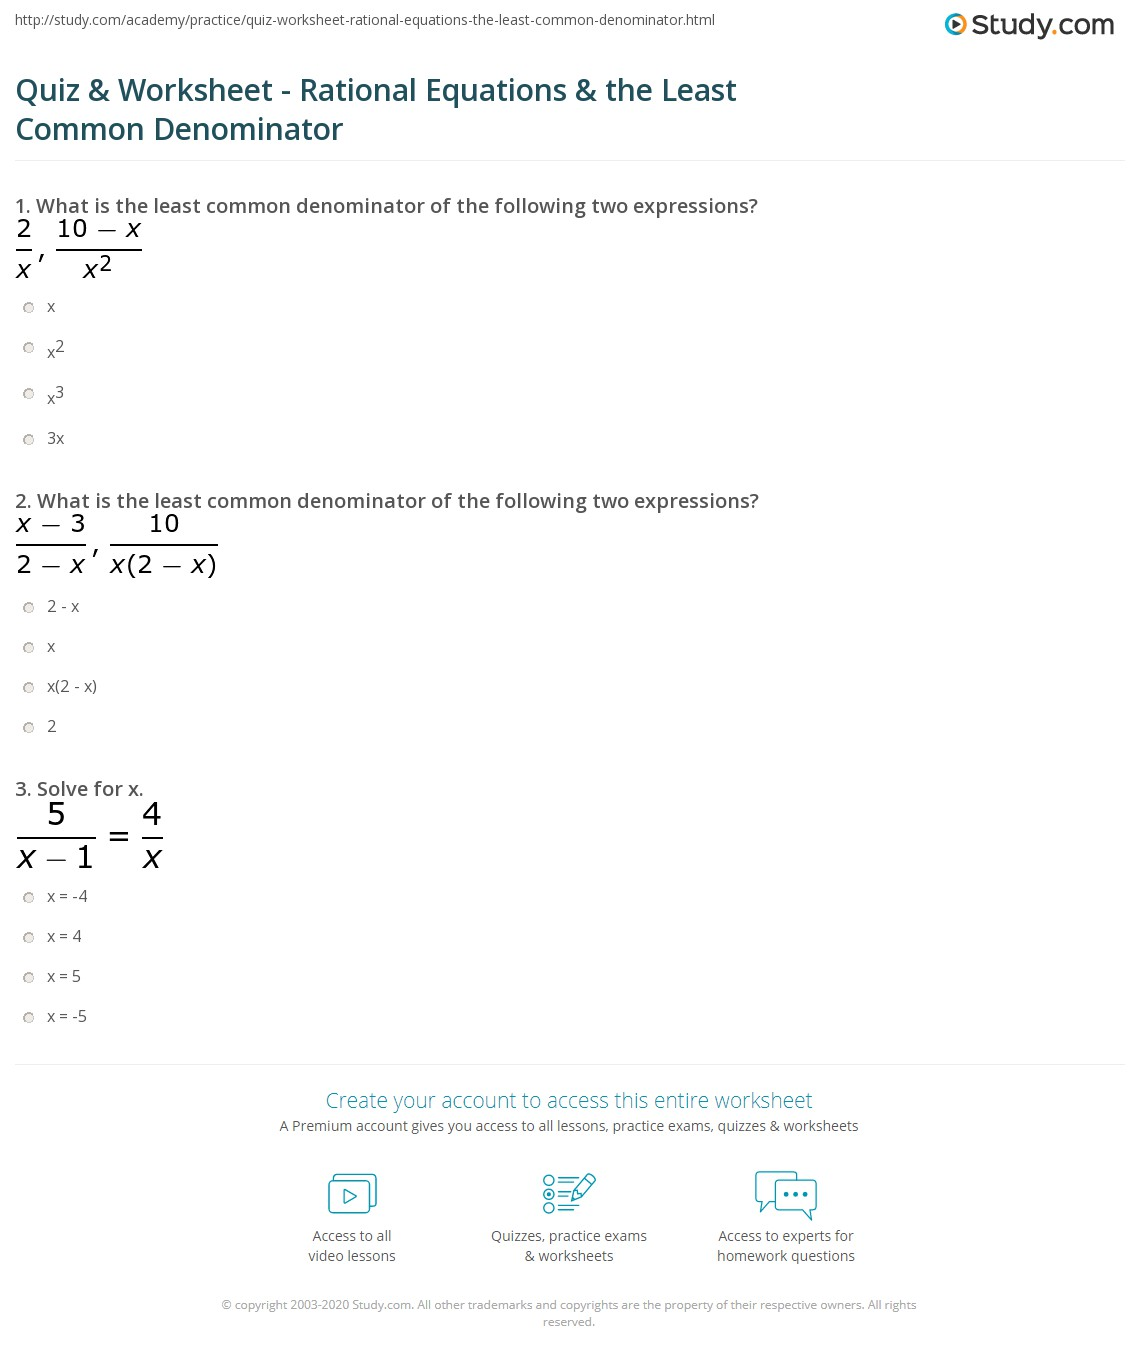 Worksheets Least Common Denominator Worksheet quiz worksheet rational equations the least common print solving and finding denominator worksheet